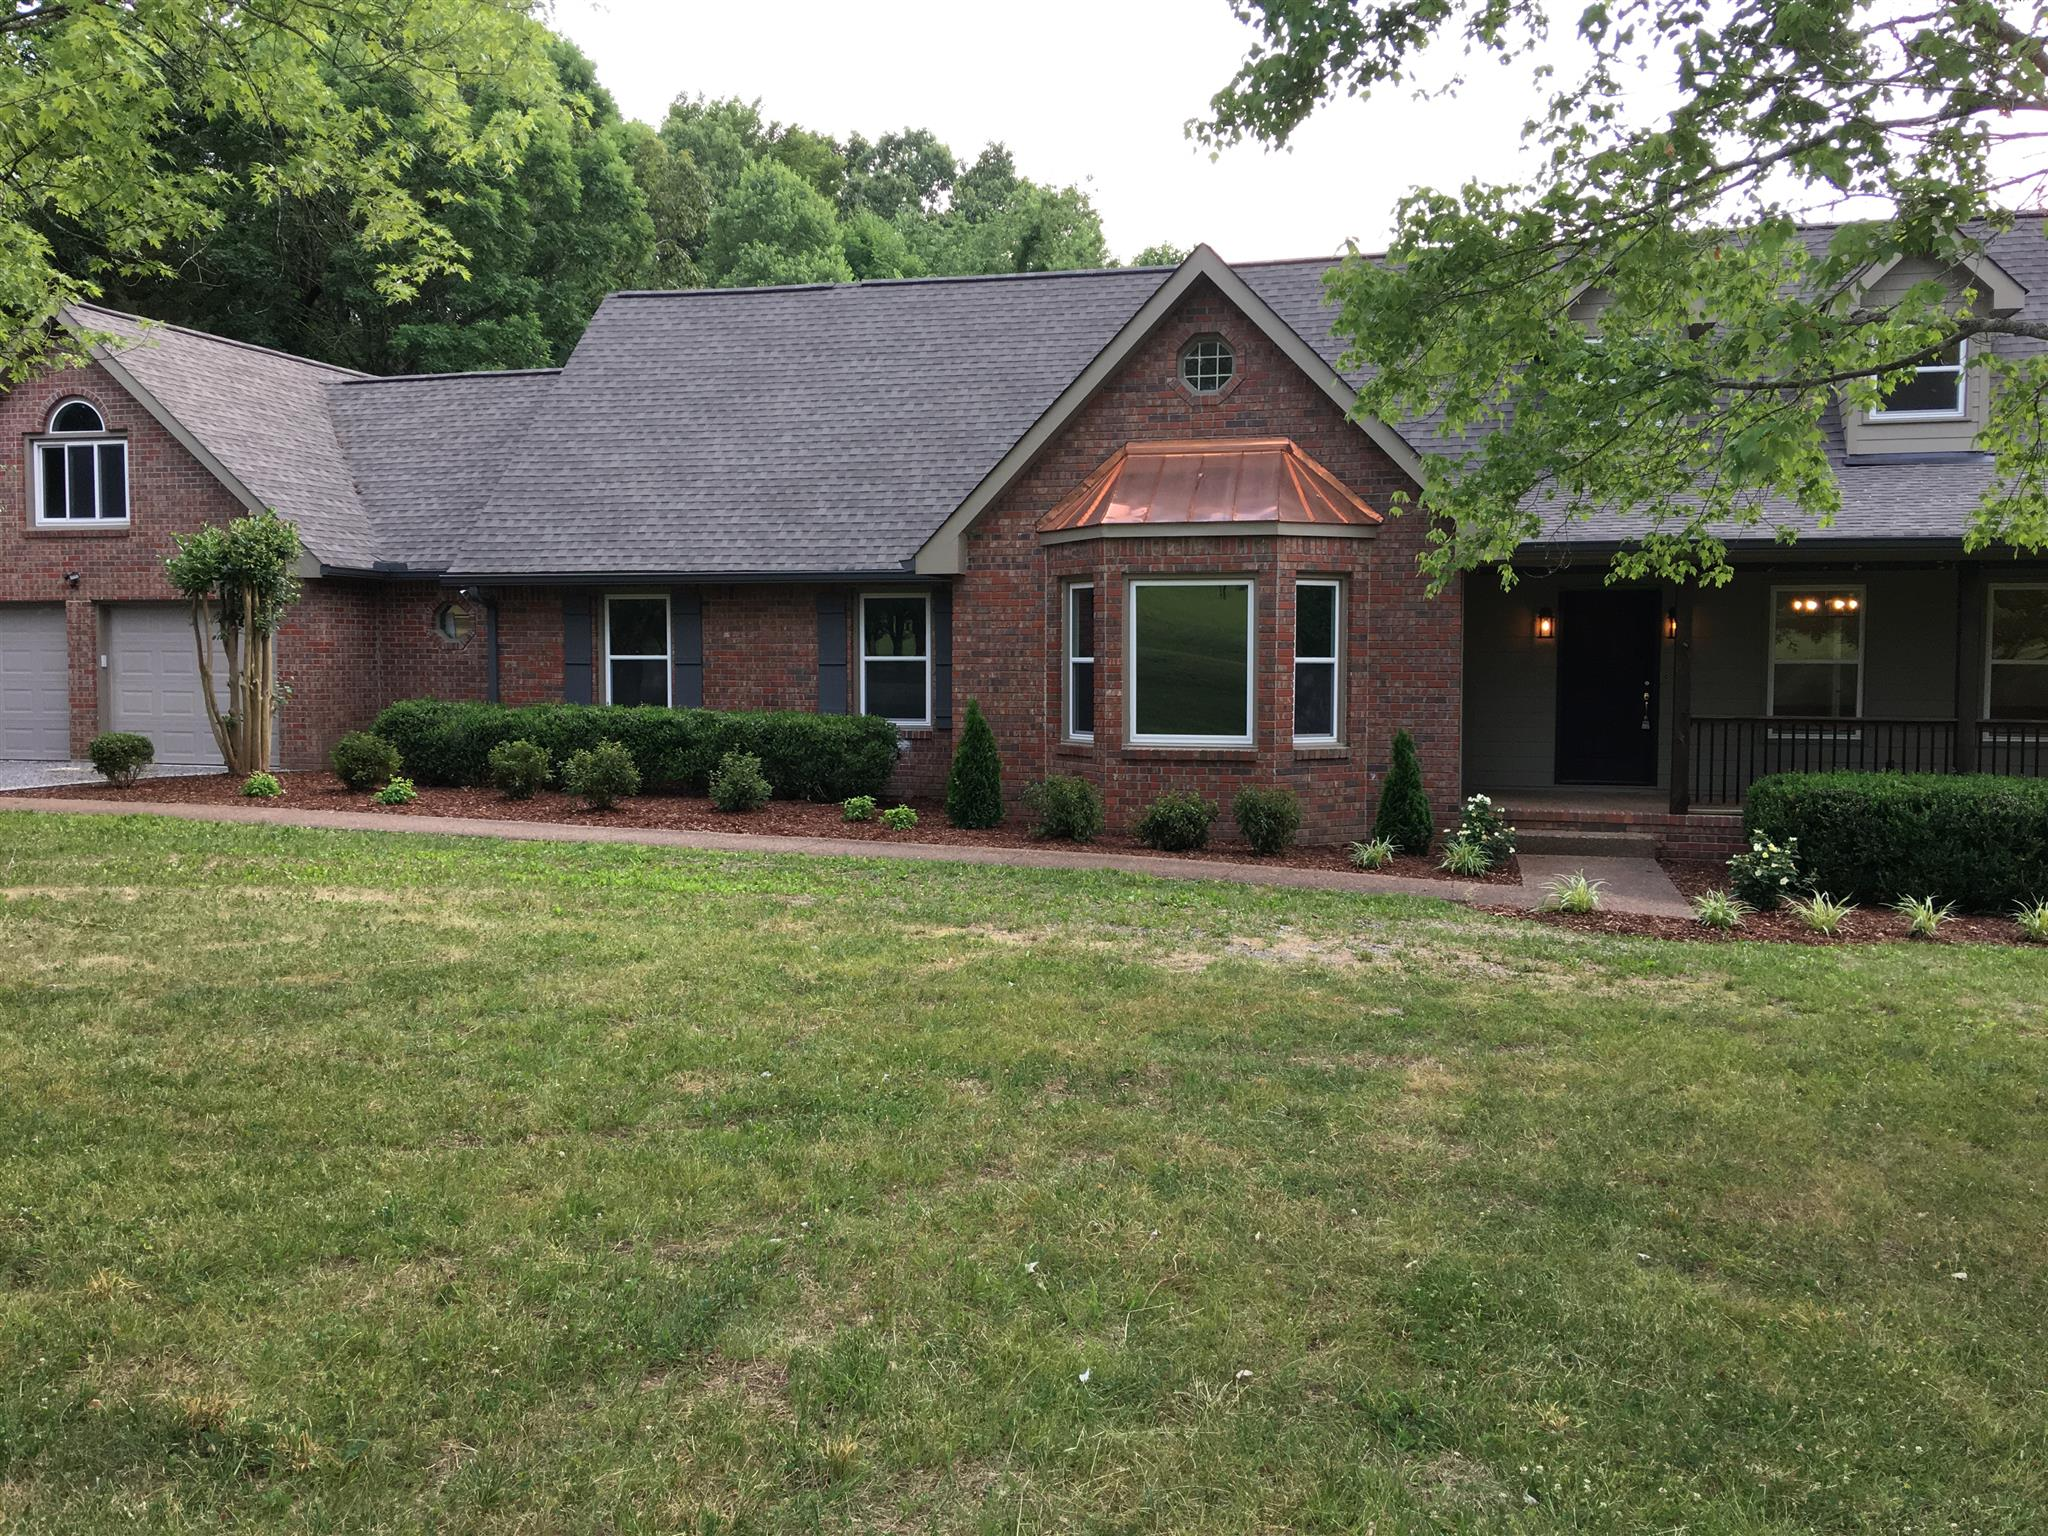 3016 New Hall Rd, Greenbrier, TN 37073 - Greenbrier, TN real estate listing